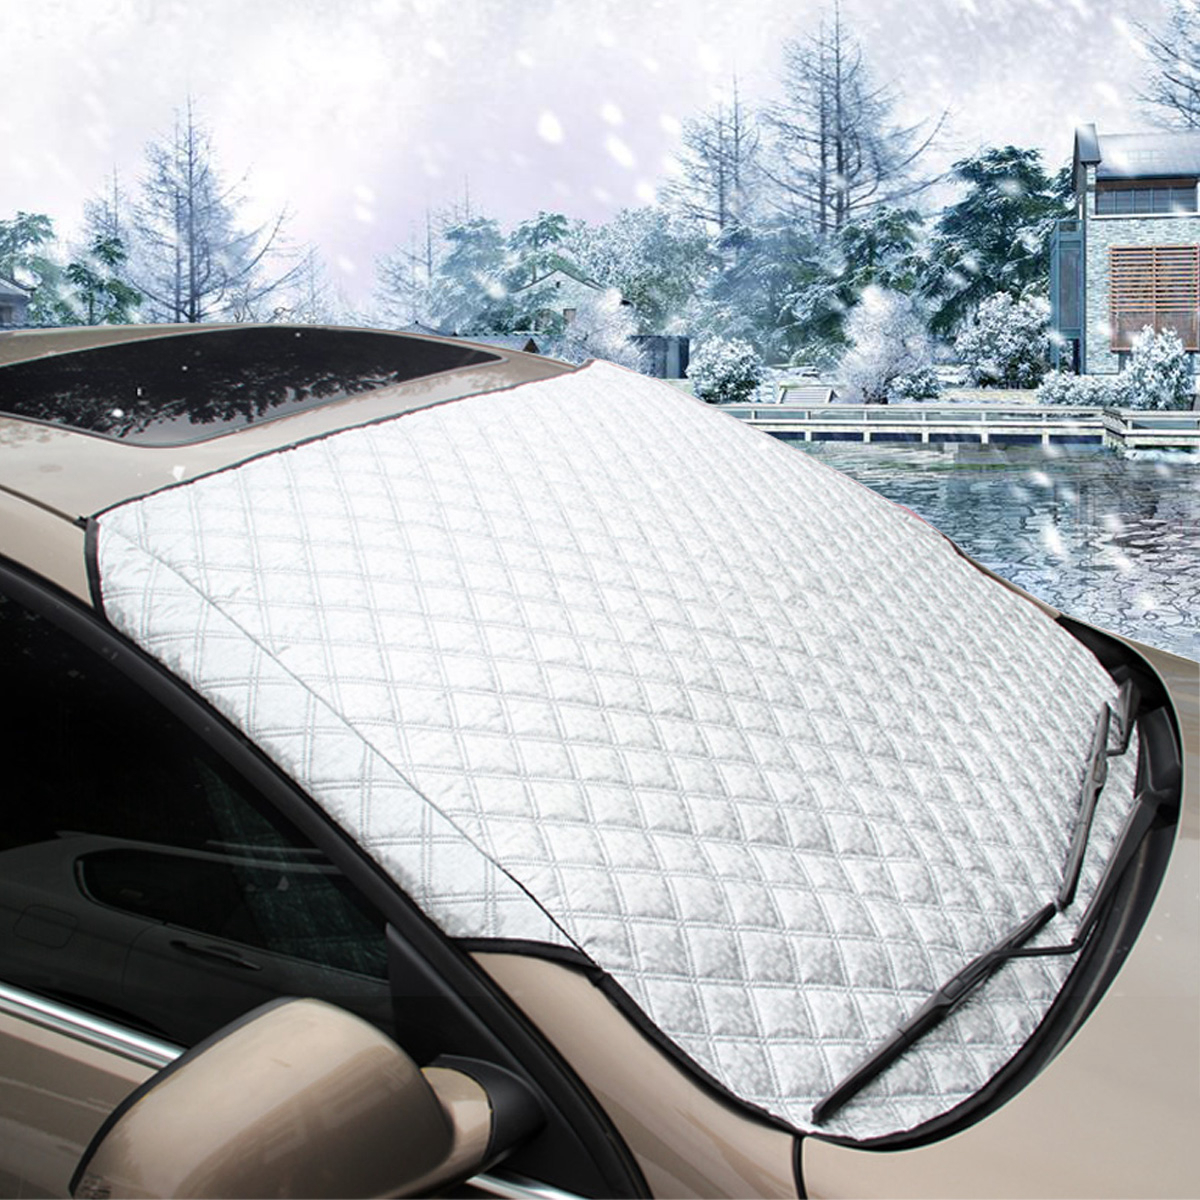 MATCC All-seasons Car Windshield Snow Cover & Sun Shade Cover & UV Protector Cover with Cotton Thicker ,Universal for Auto SUV Small Car, 57.87(width) X 40.16(height)